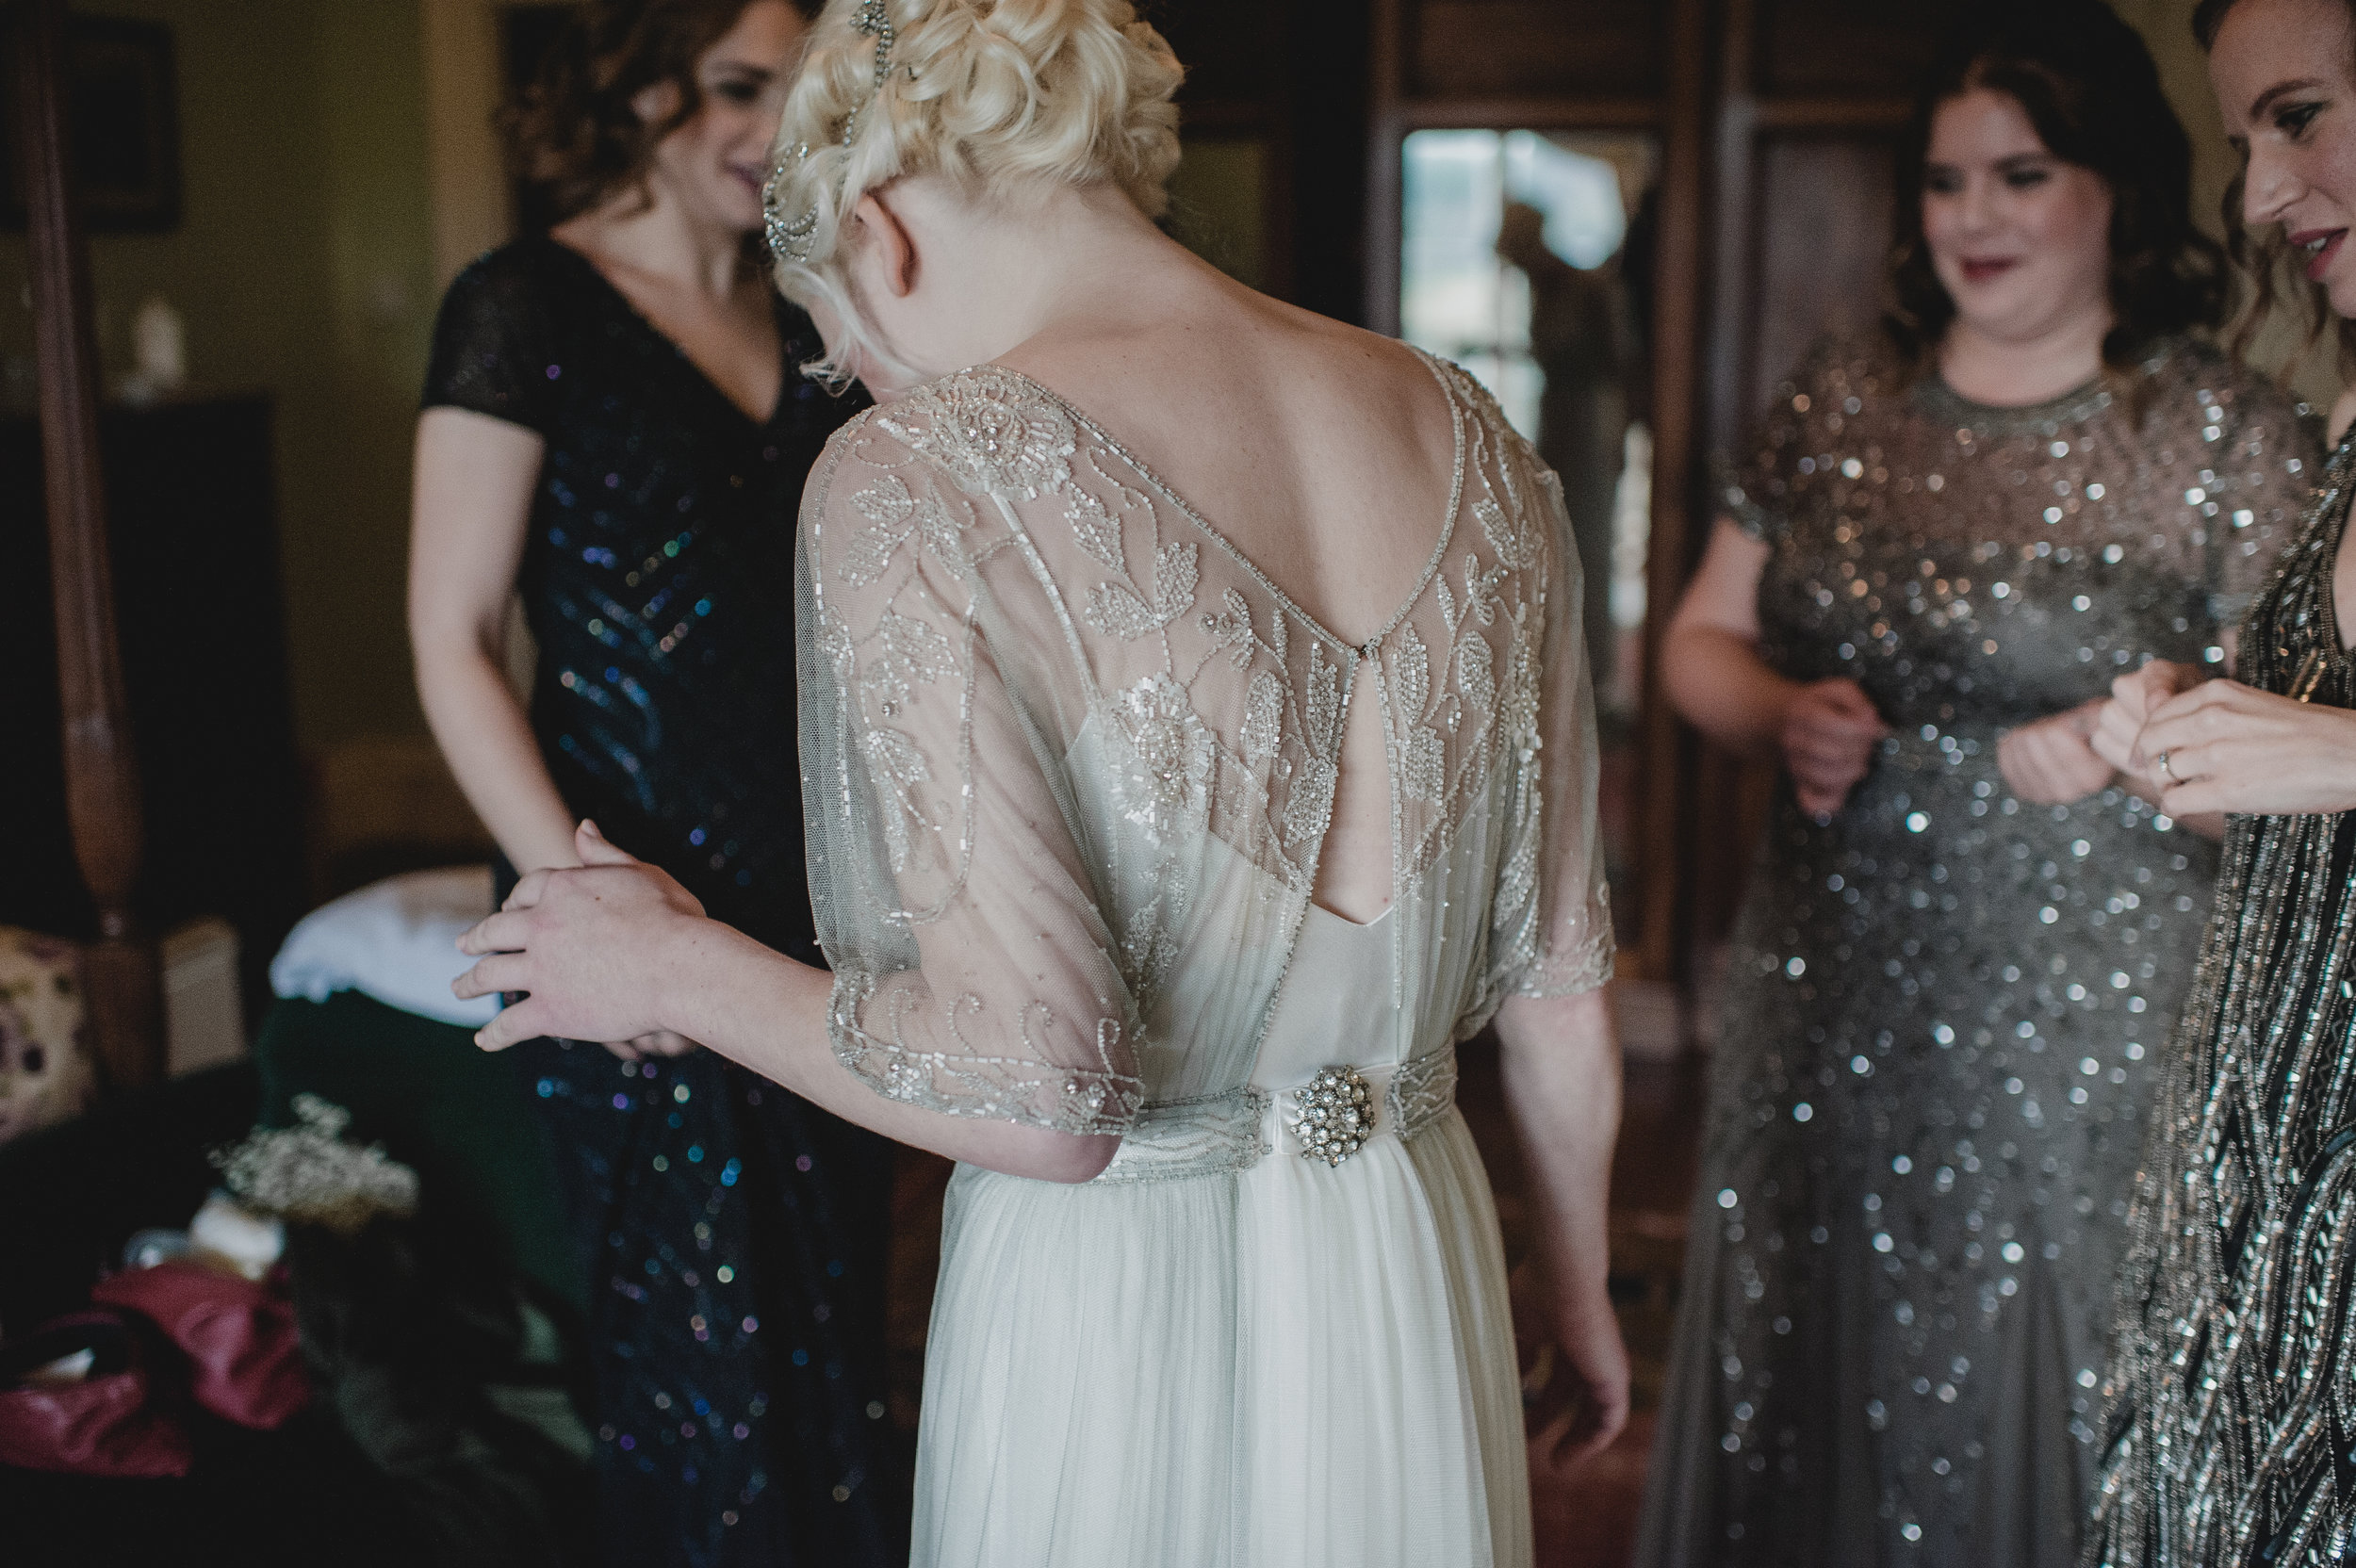 Altered and repaired wedding dress